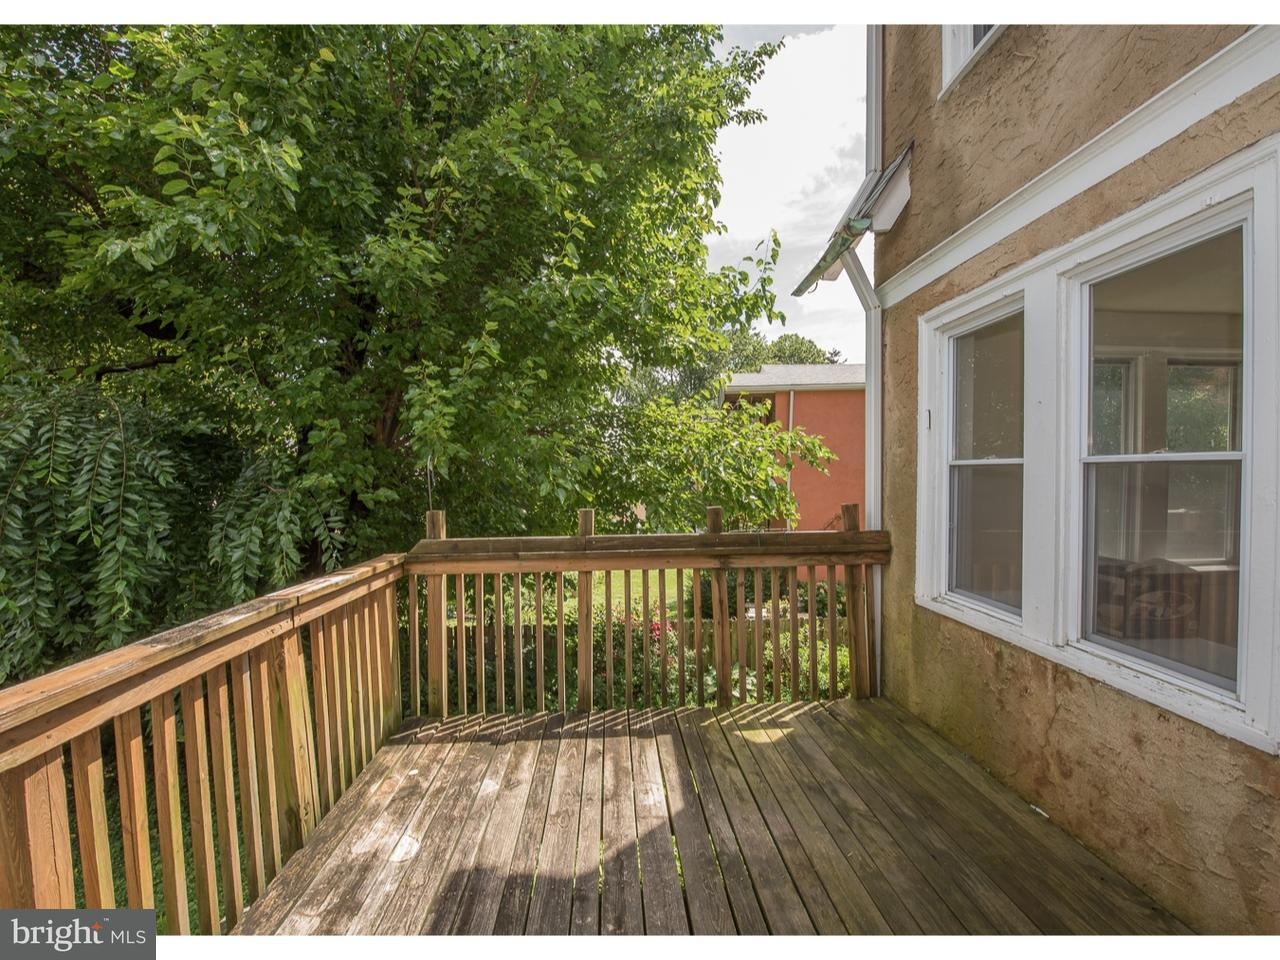 Additional photo for property listing at 606 PENFIELD Avenue  Havertown, Pennsylvanie 19083 États-Unis